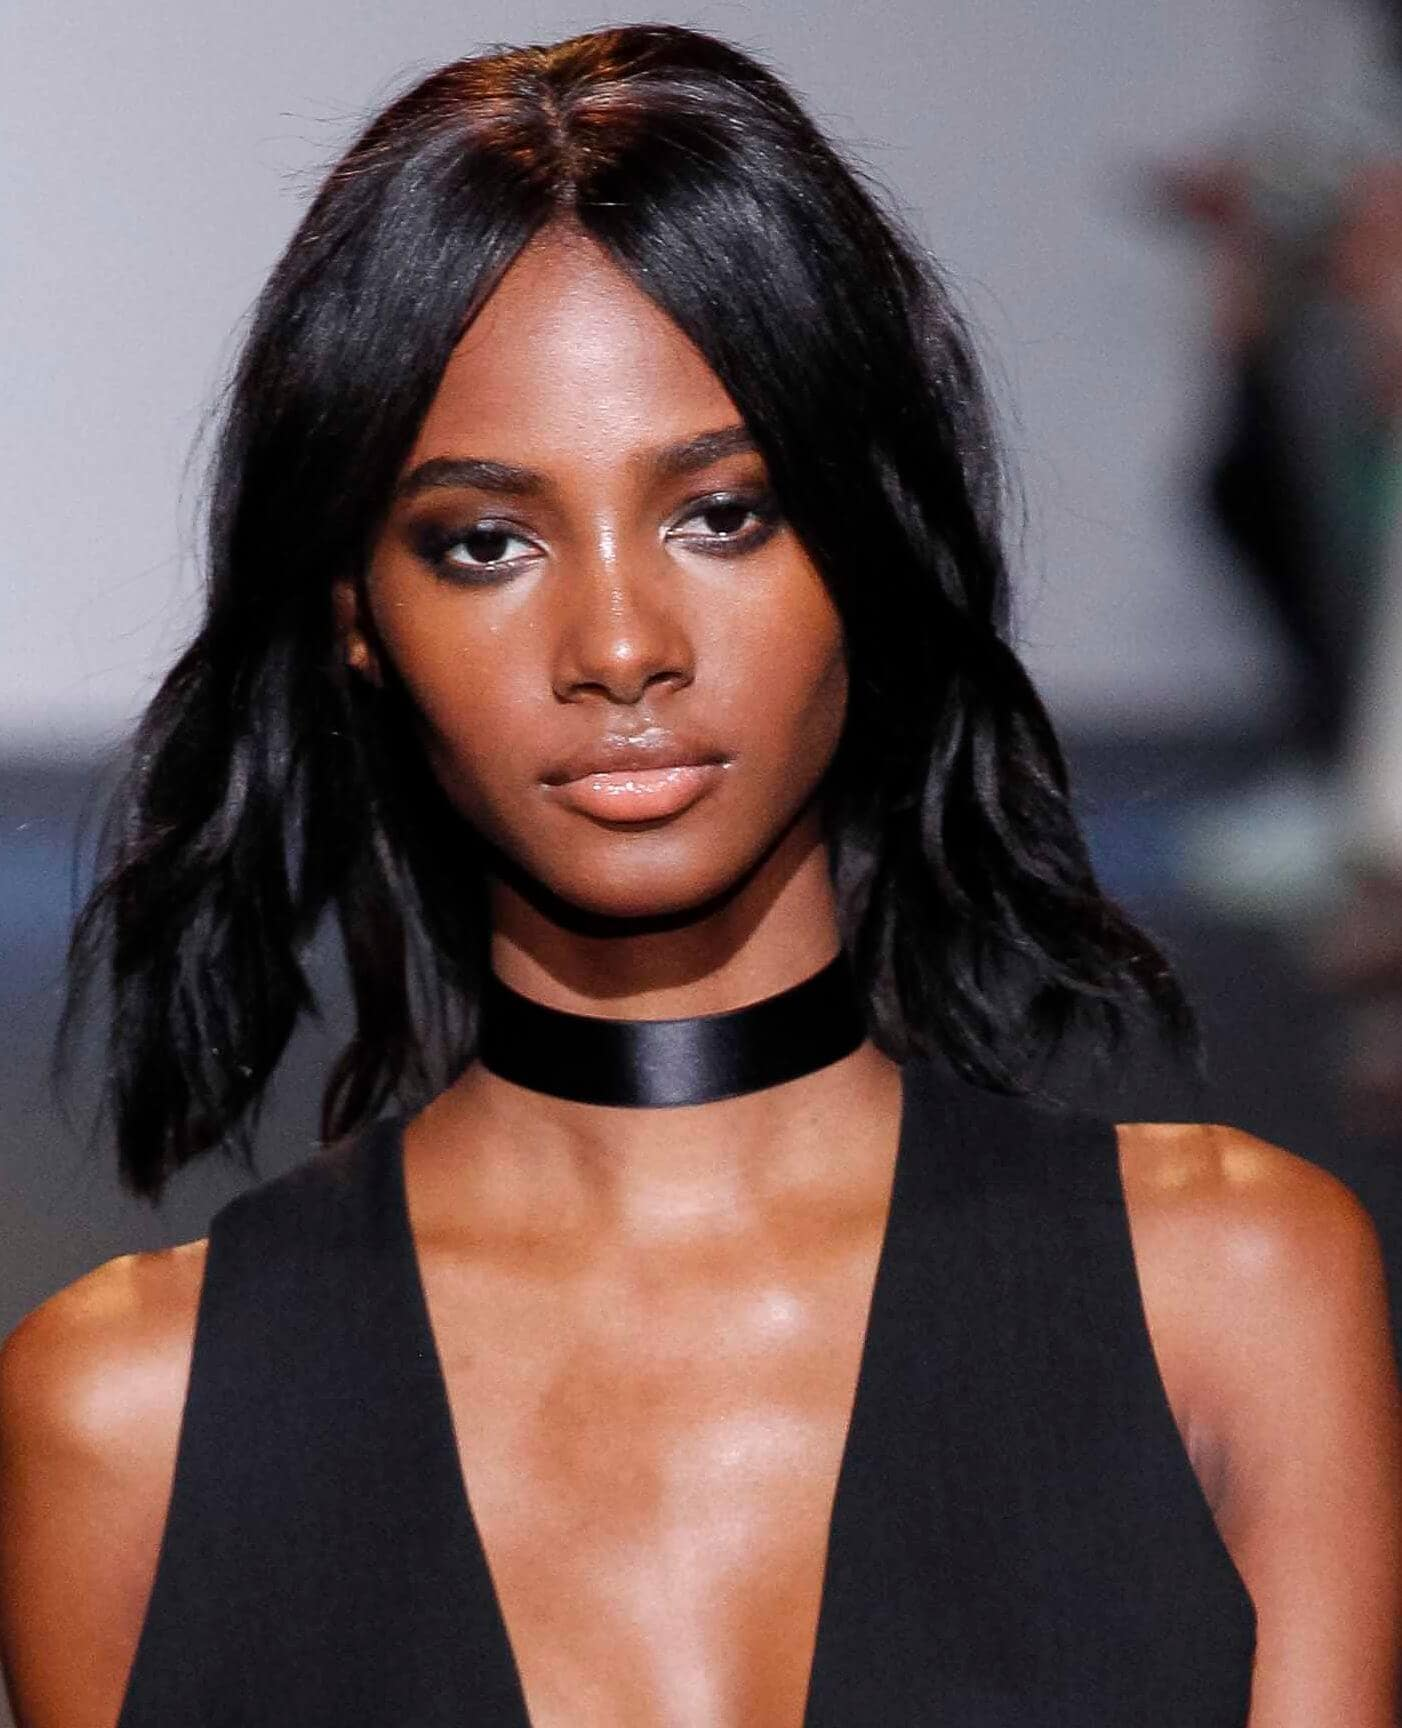 Hair straightening treatment: Model with relaxed dark brown shoulder length hair wearing a black vest and choker on runway.